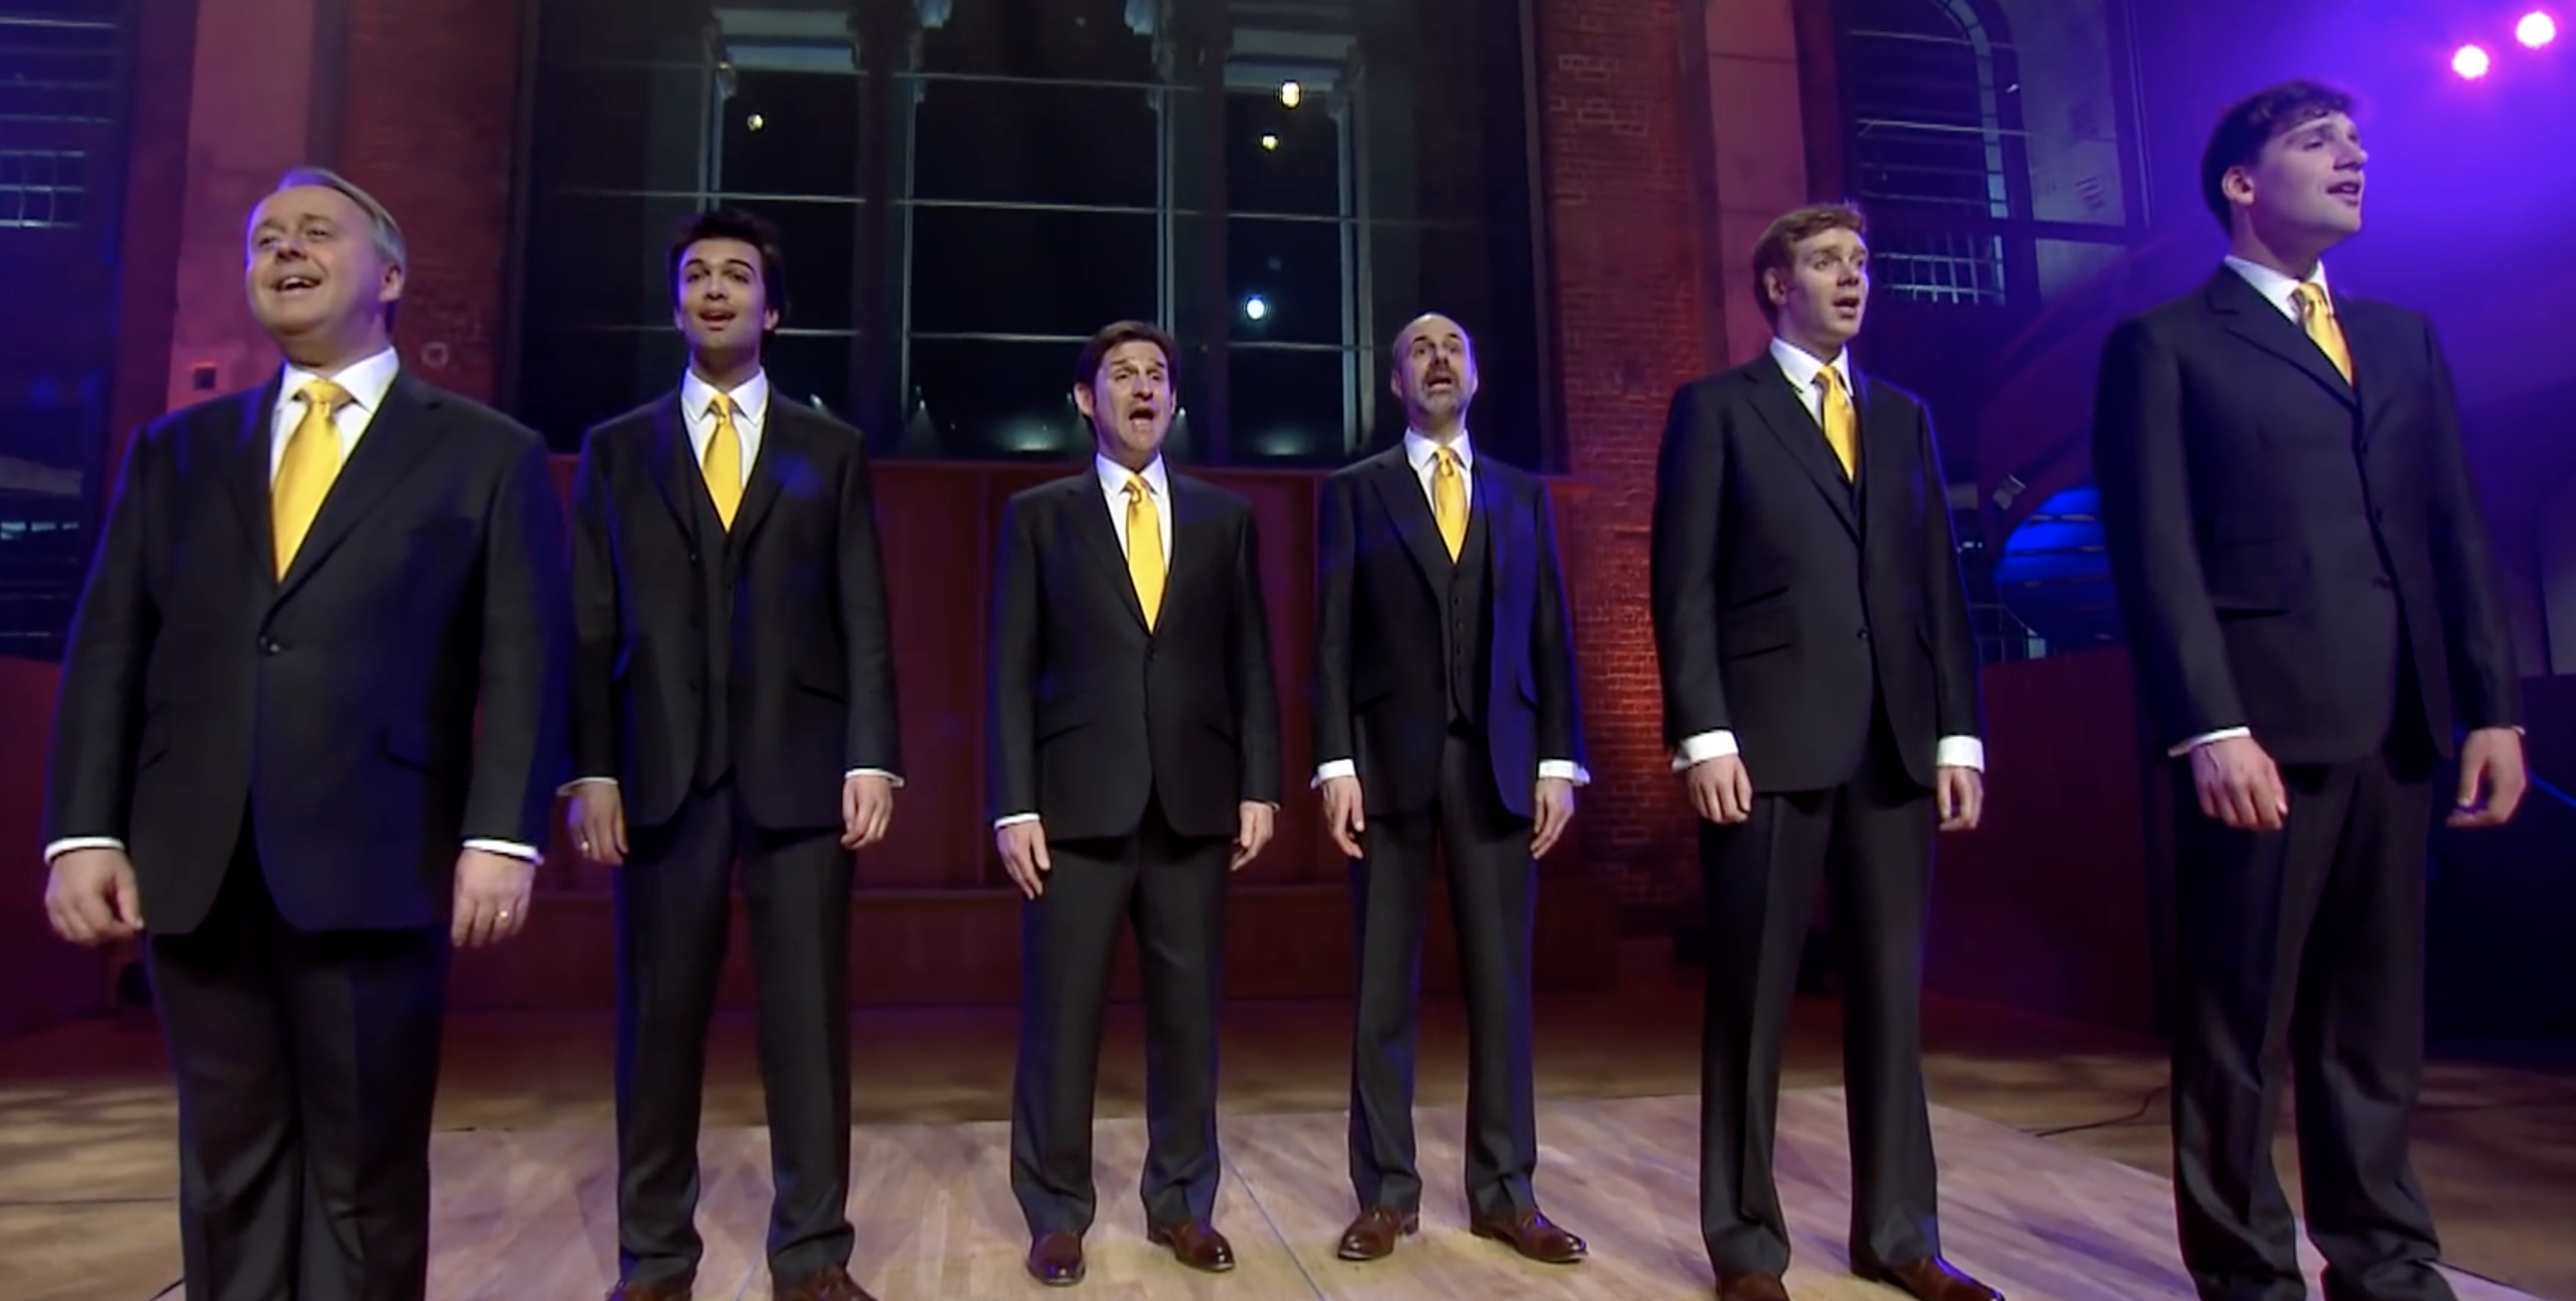 The King's Singers – Christmas